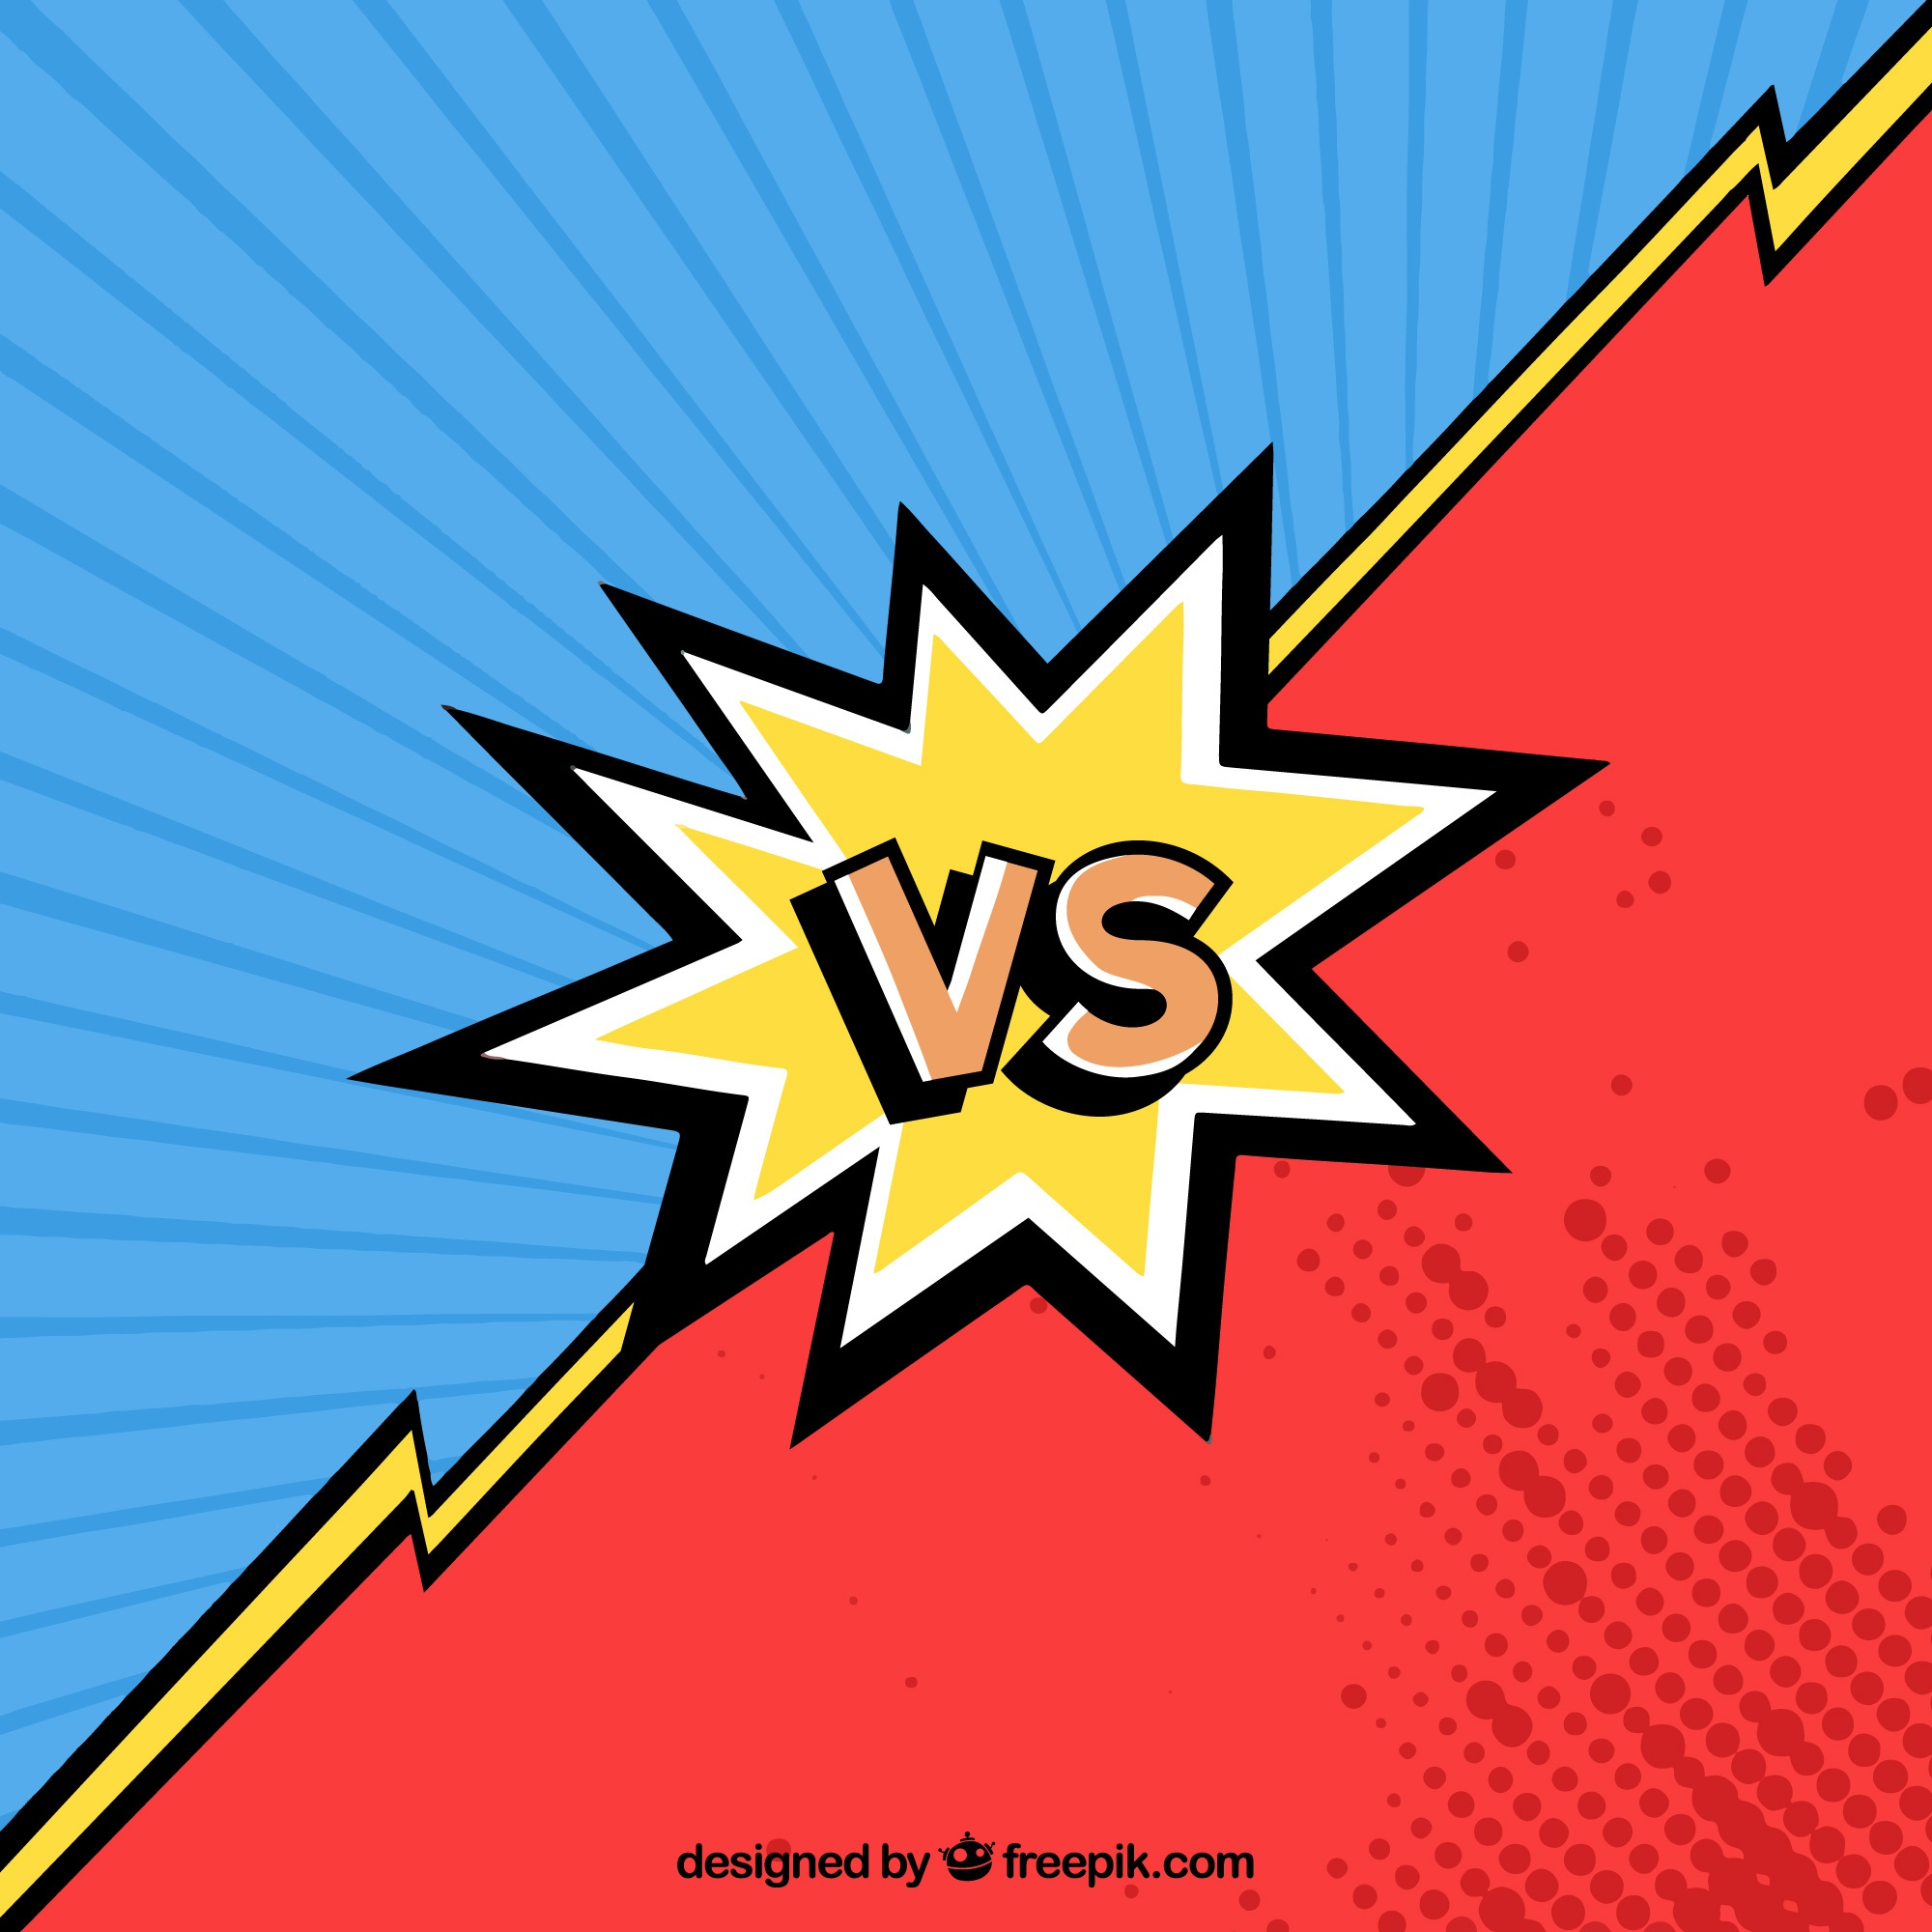 Versus red and blue background